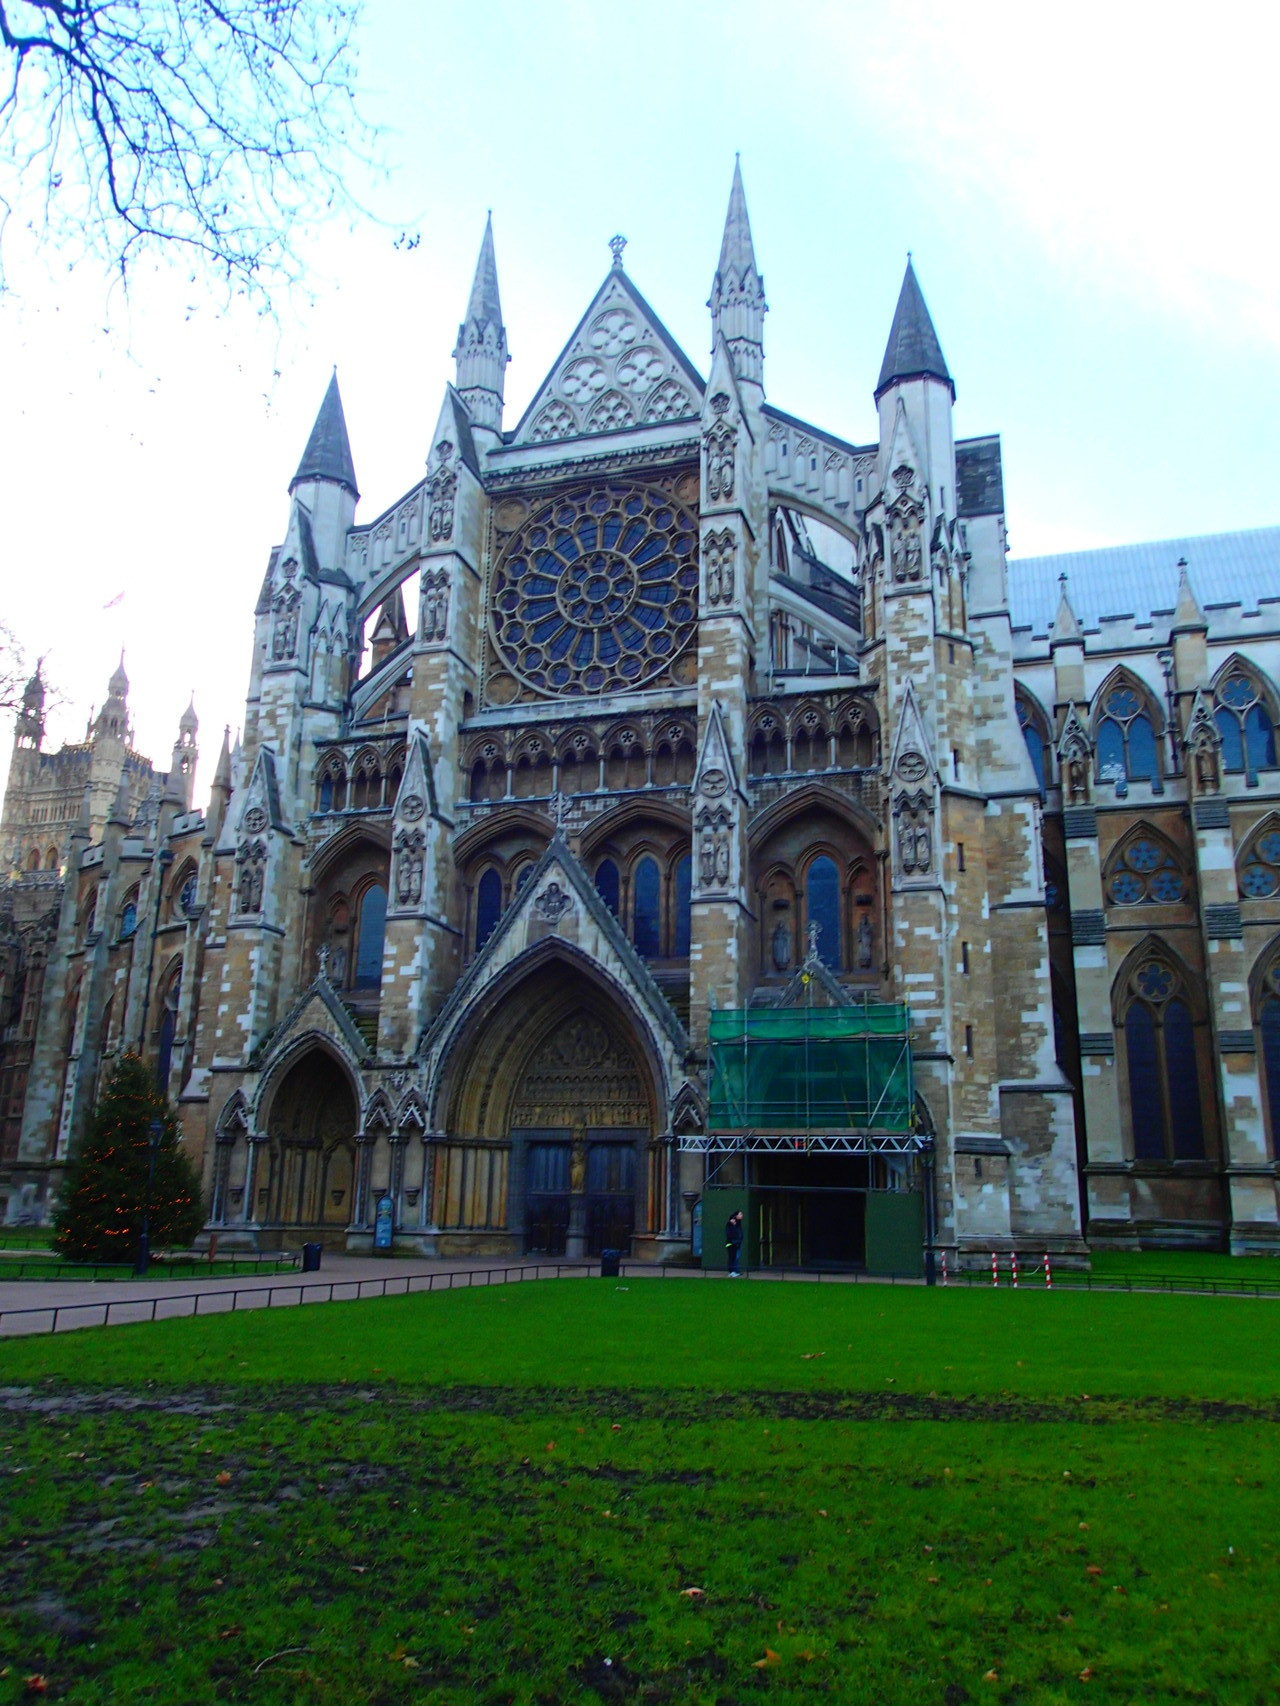 The Chapel of the Westminster Abbey